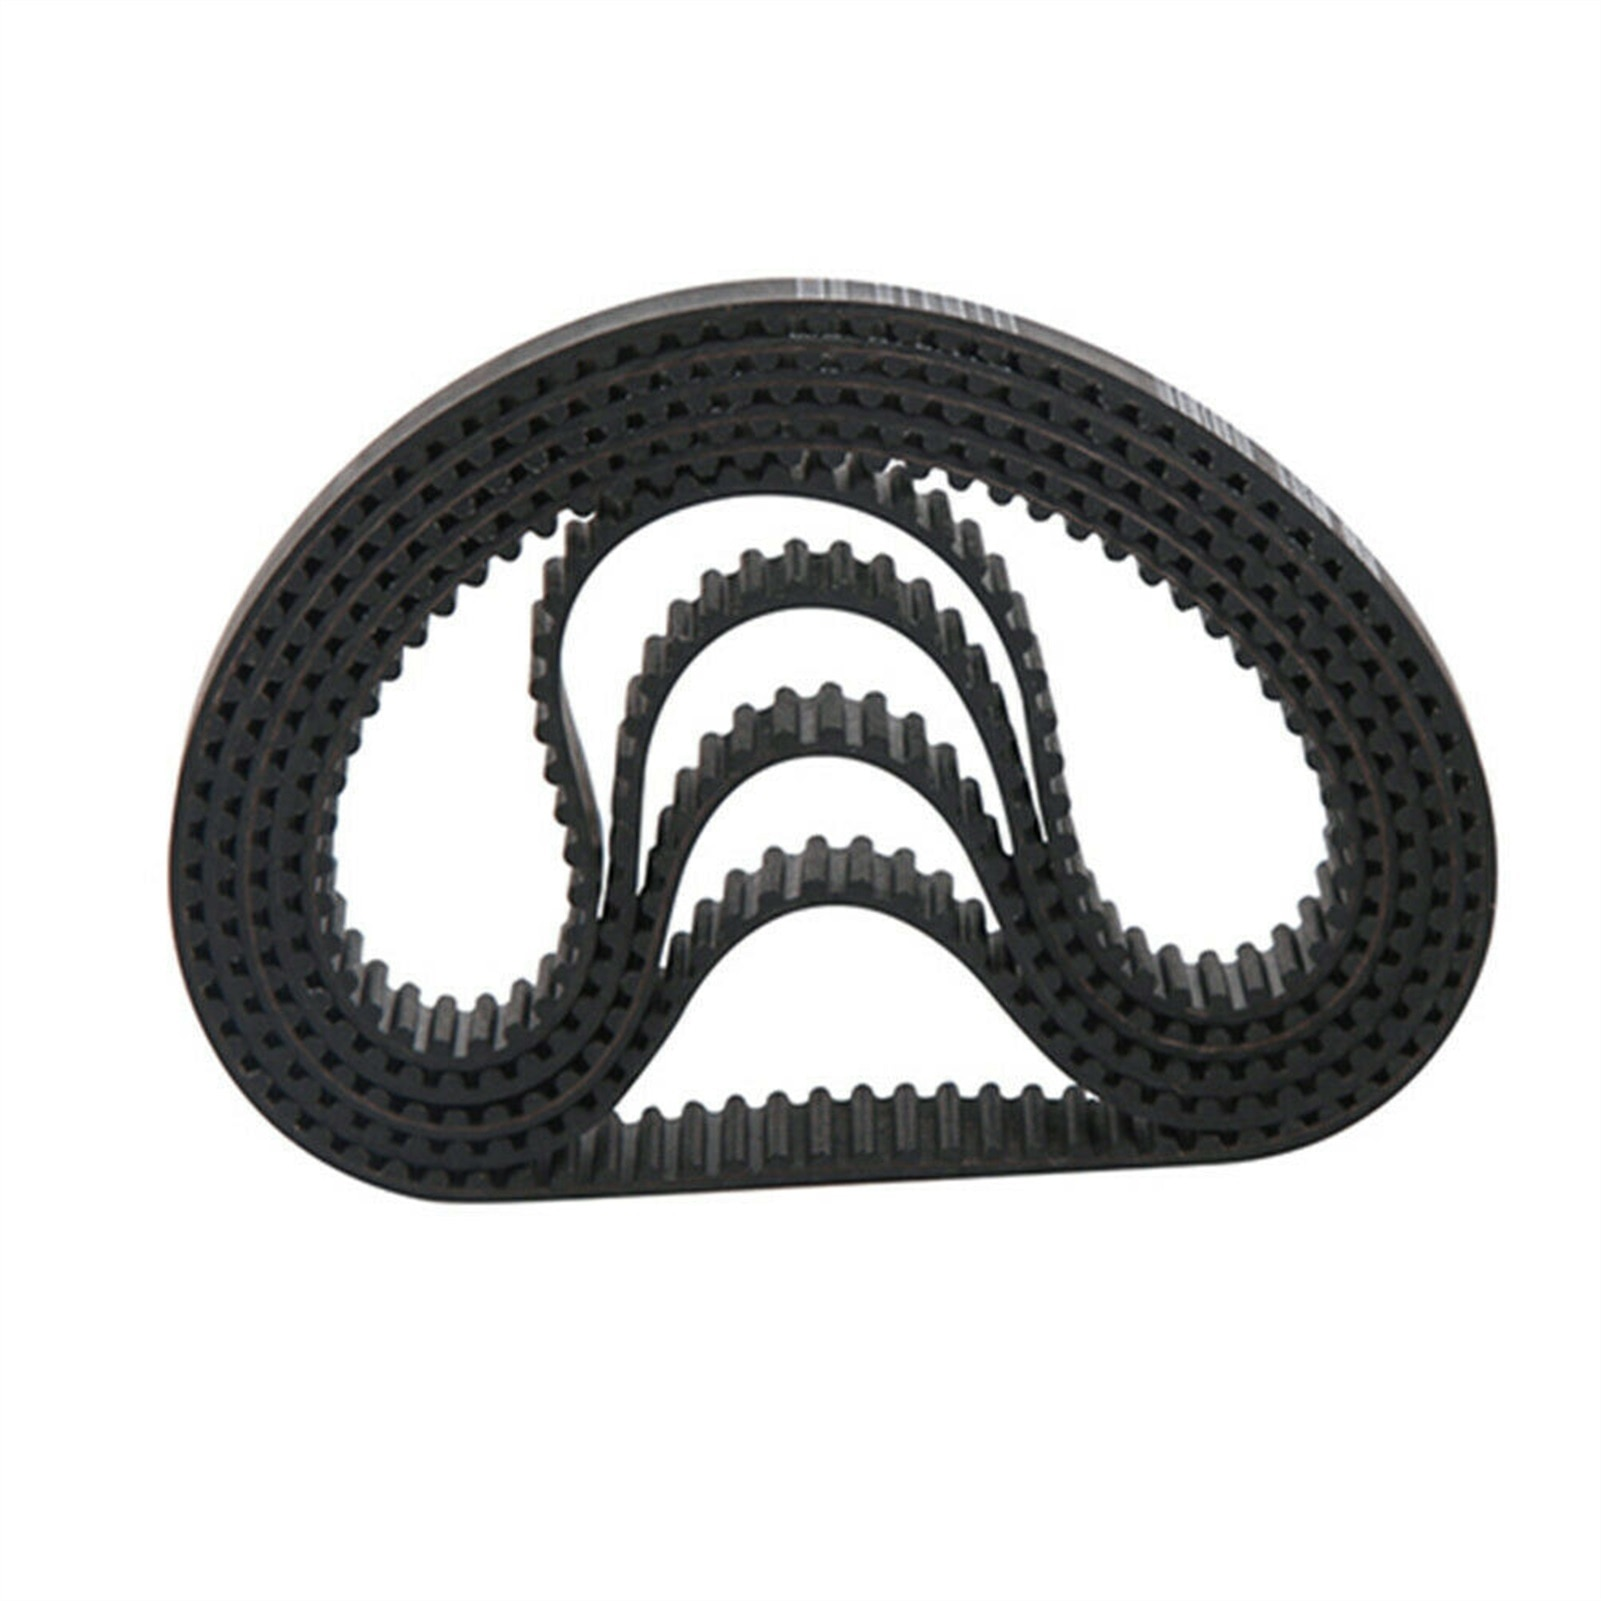 htd 3m timing belt width rubbe toothed belt closed loop synchronous belt pitch 5mm HTD 5M 370/375/380/385/390/395/400/405mm, Timing Belt Arc Teeth 5mm Pitch For 15mm Width, Rubber Drive Belt  Synchronous Belt